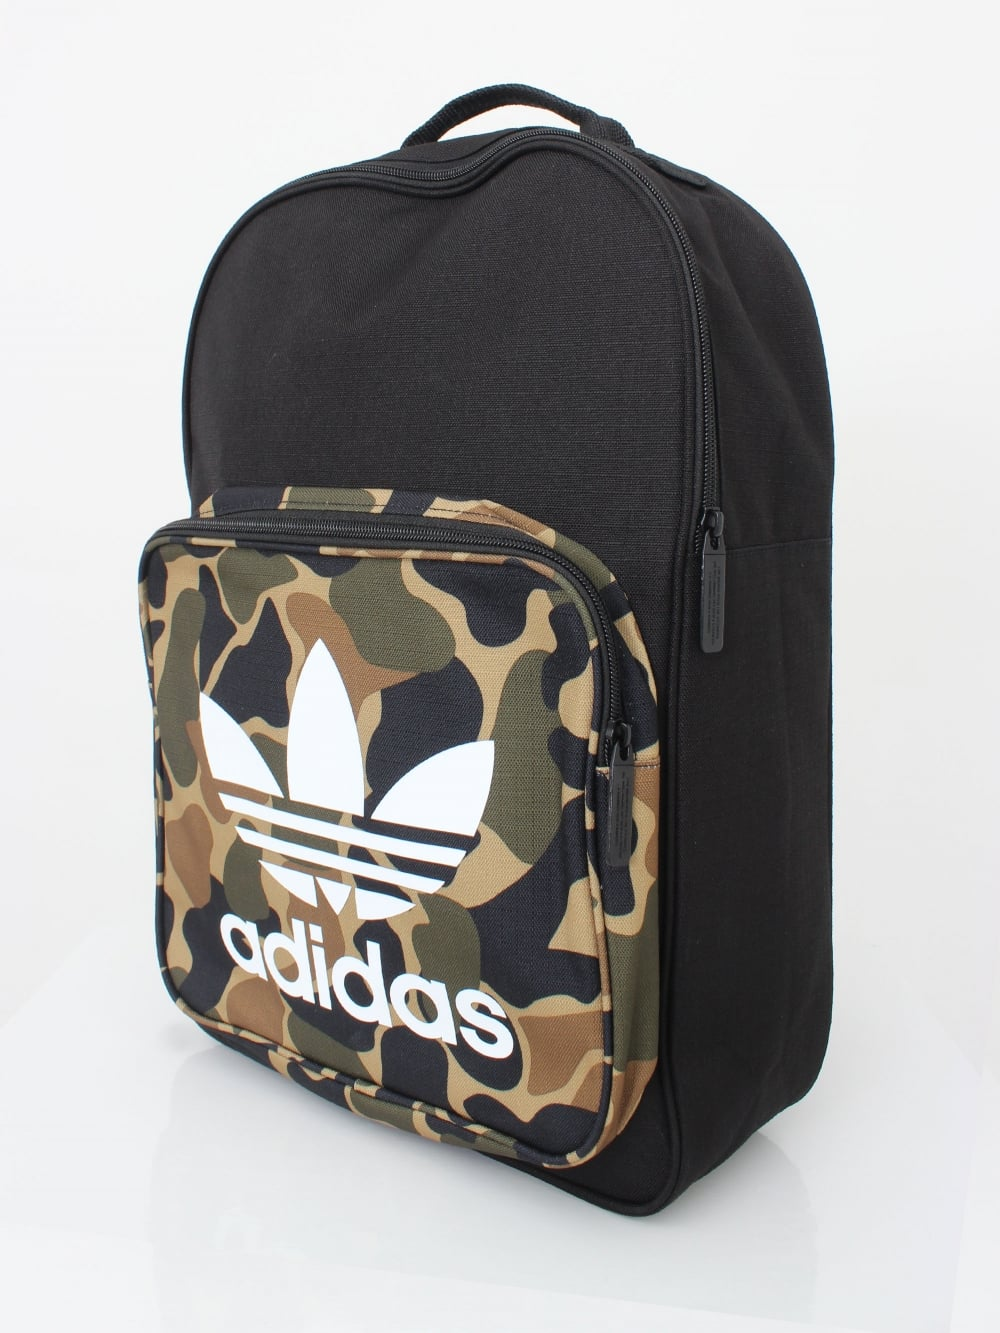 34a05bc87a7 adidas Originals Classic Camo Backpack in Mulit   Northern Threads